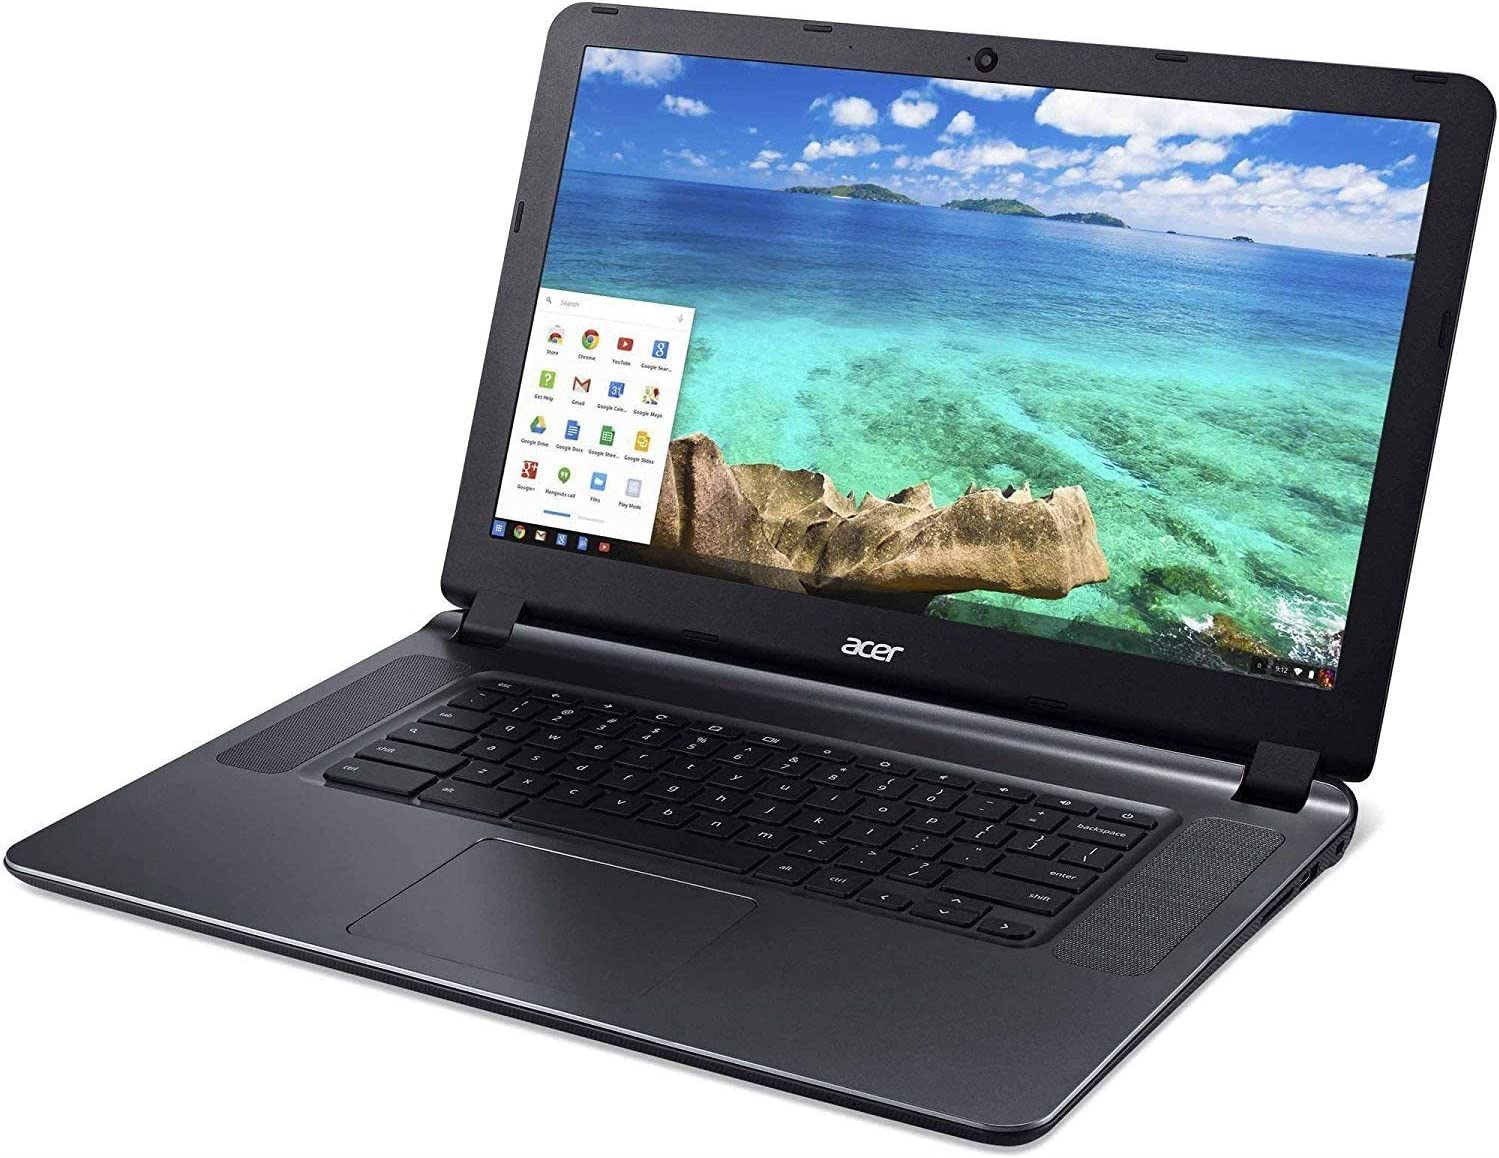 Acer CB3-532 15.6inch HD Chromebook with 3x Faster WiFi, Intel Dual-Core Celeron N3060 upto 2.48GHz, 2GB RAM, 16GB SSD,HDMI,USB 3.0, Webcam, 12-Hrs Battery, Chrome OS (Renewed)